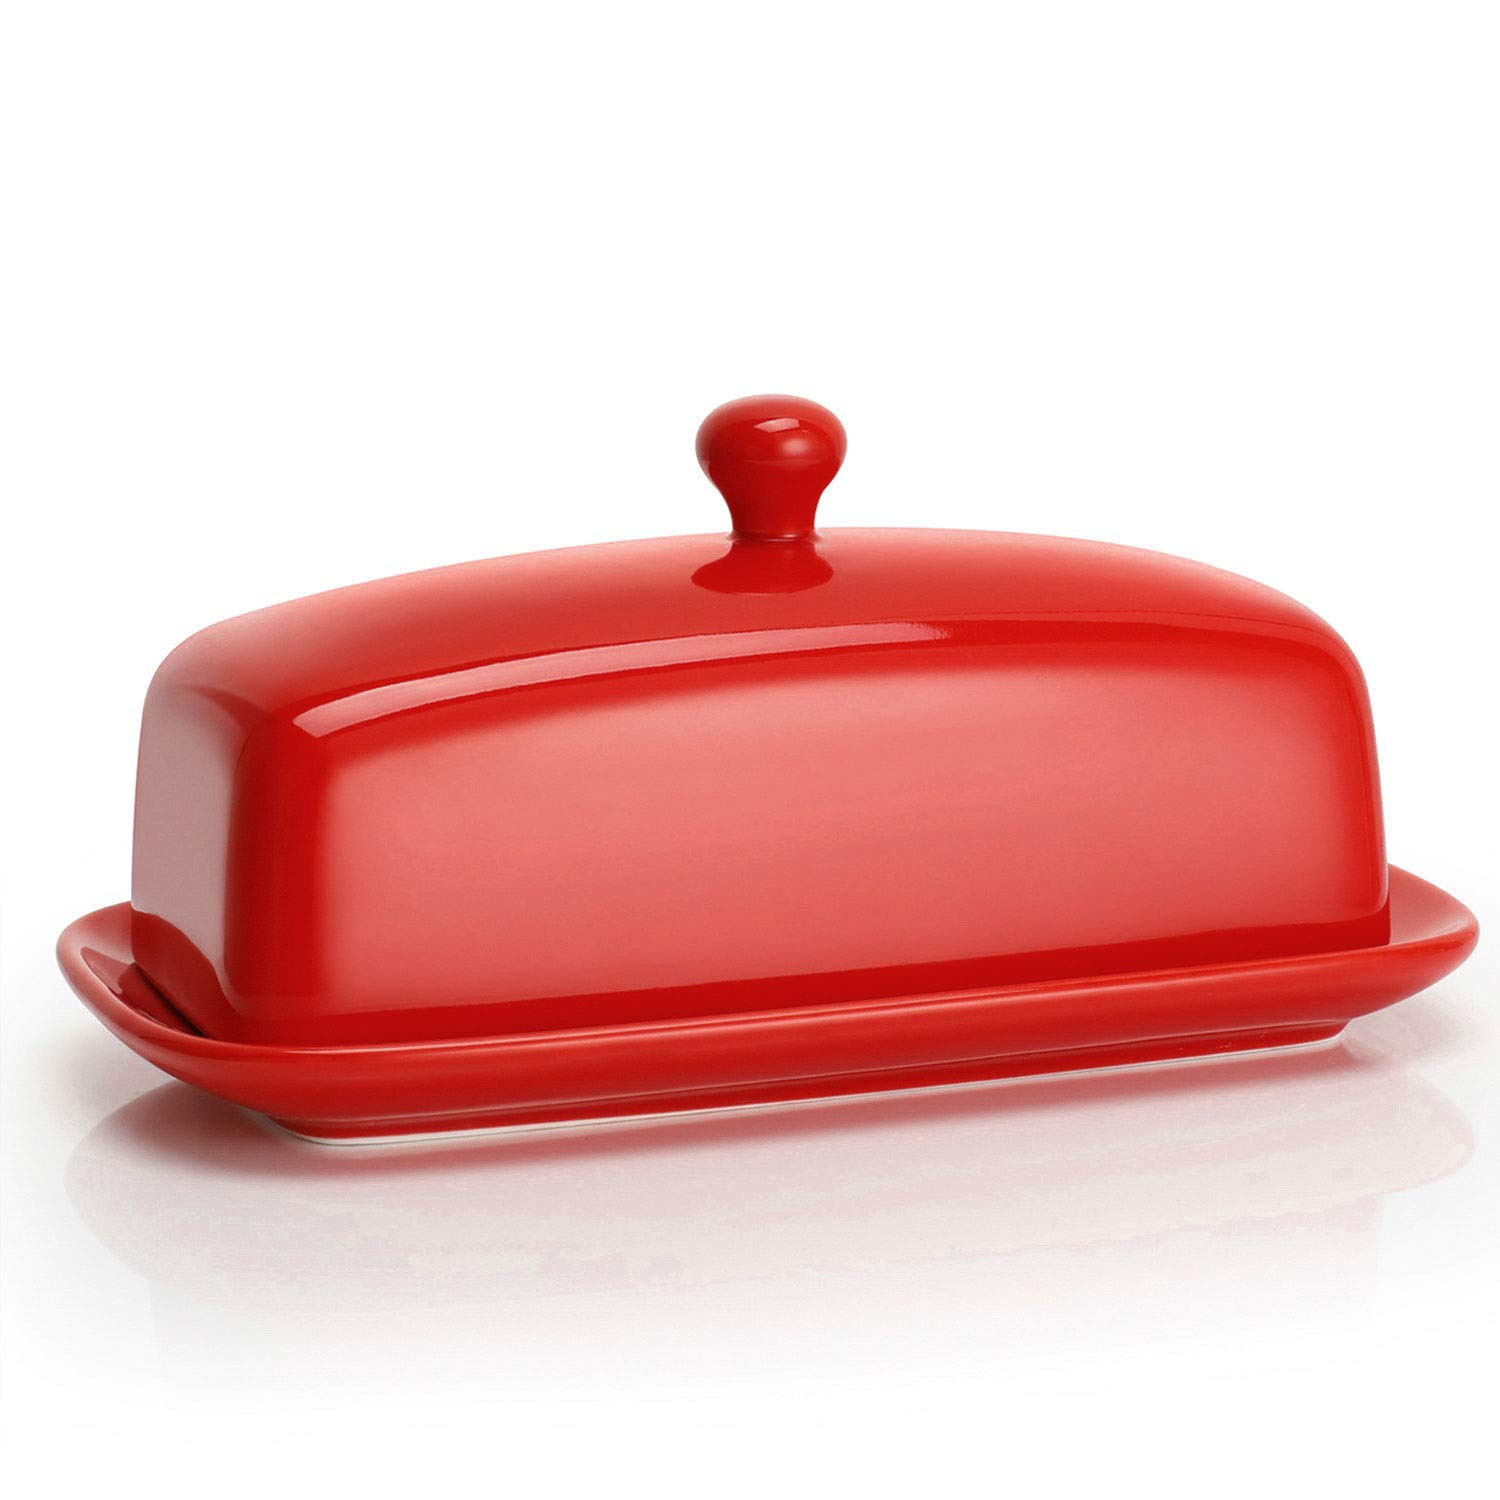 Sweese 307.104 Porcelain Butter Dish with Lid, Perfect for East West Coast Butter, Red